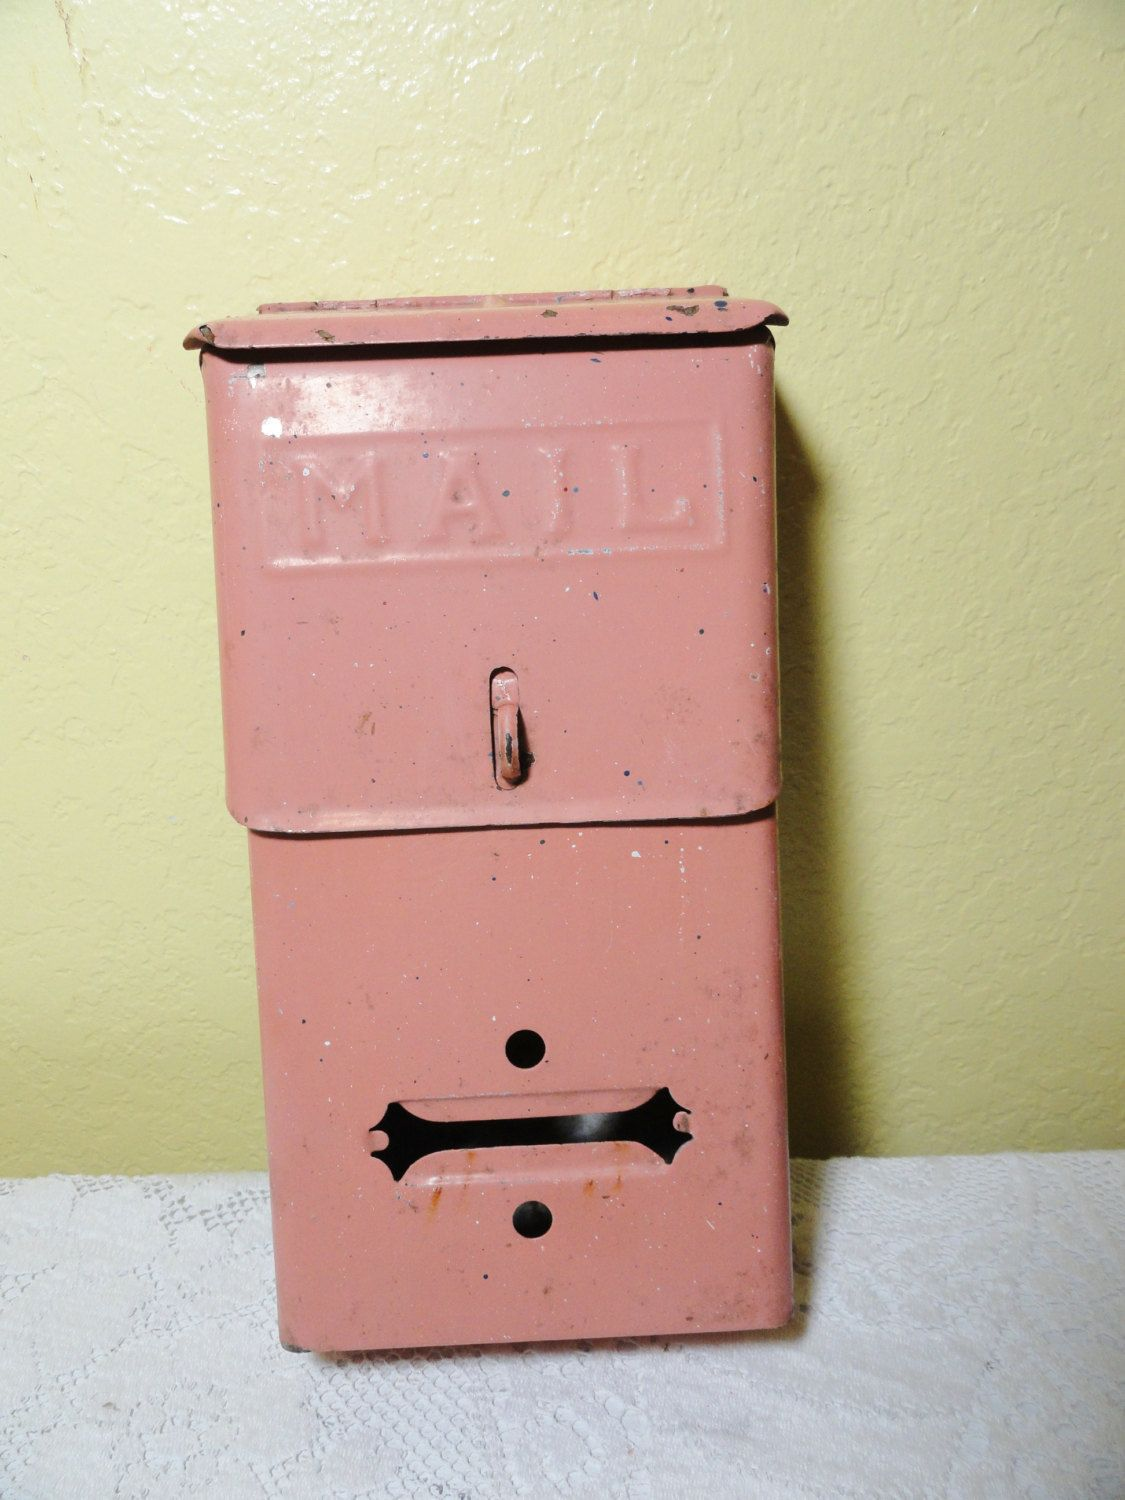 Vintage Mailbox Architectural Wall Mount Pink Vintage Mailbox Antique Mailbox Old Mailbox